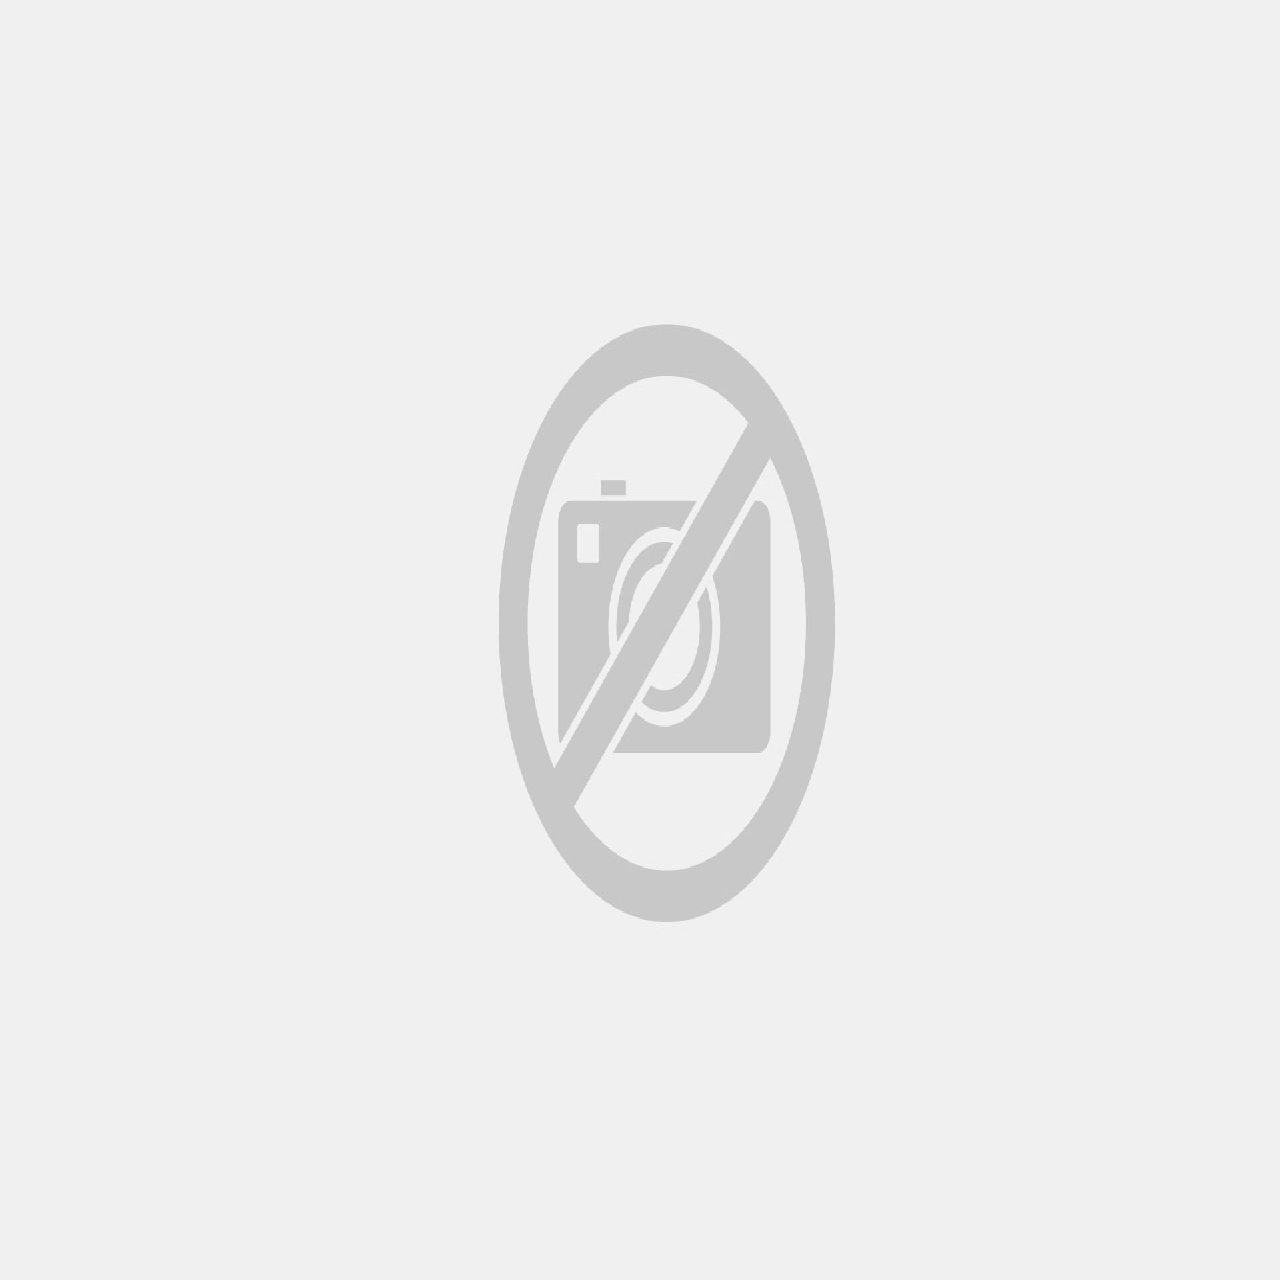 Hotel Acapulco Malibu 3 Hrs Star Hotel In Acapulco De Juarez Free And Sovereign State Of Guerrero